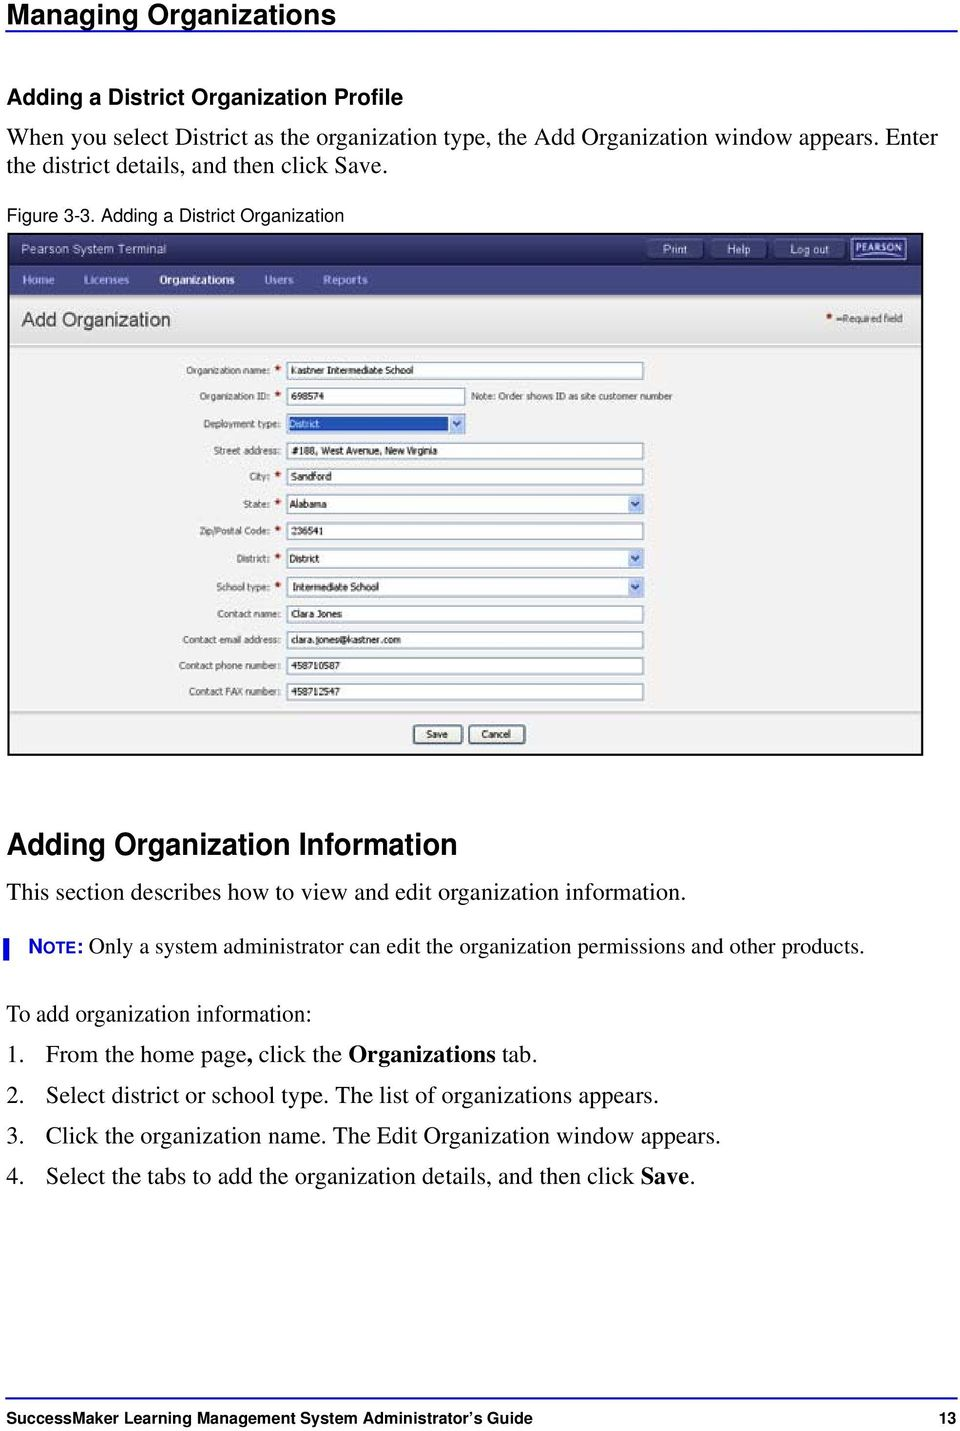 NOTE: Only a system administrator can edit the organization permissions and other products. To add organization information: 1. From the home page, click the Organizations tab. 2.